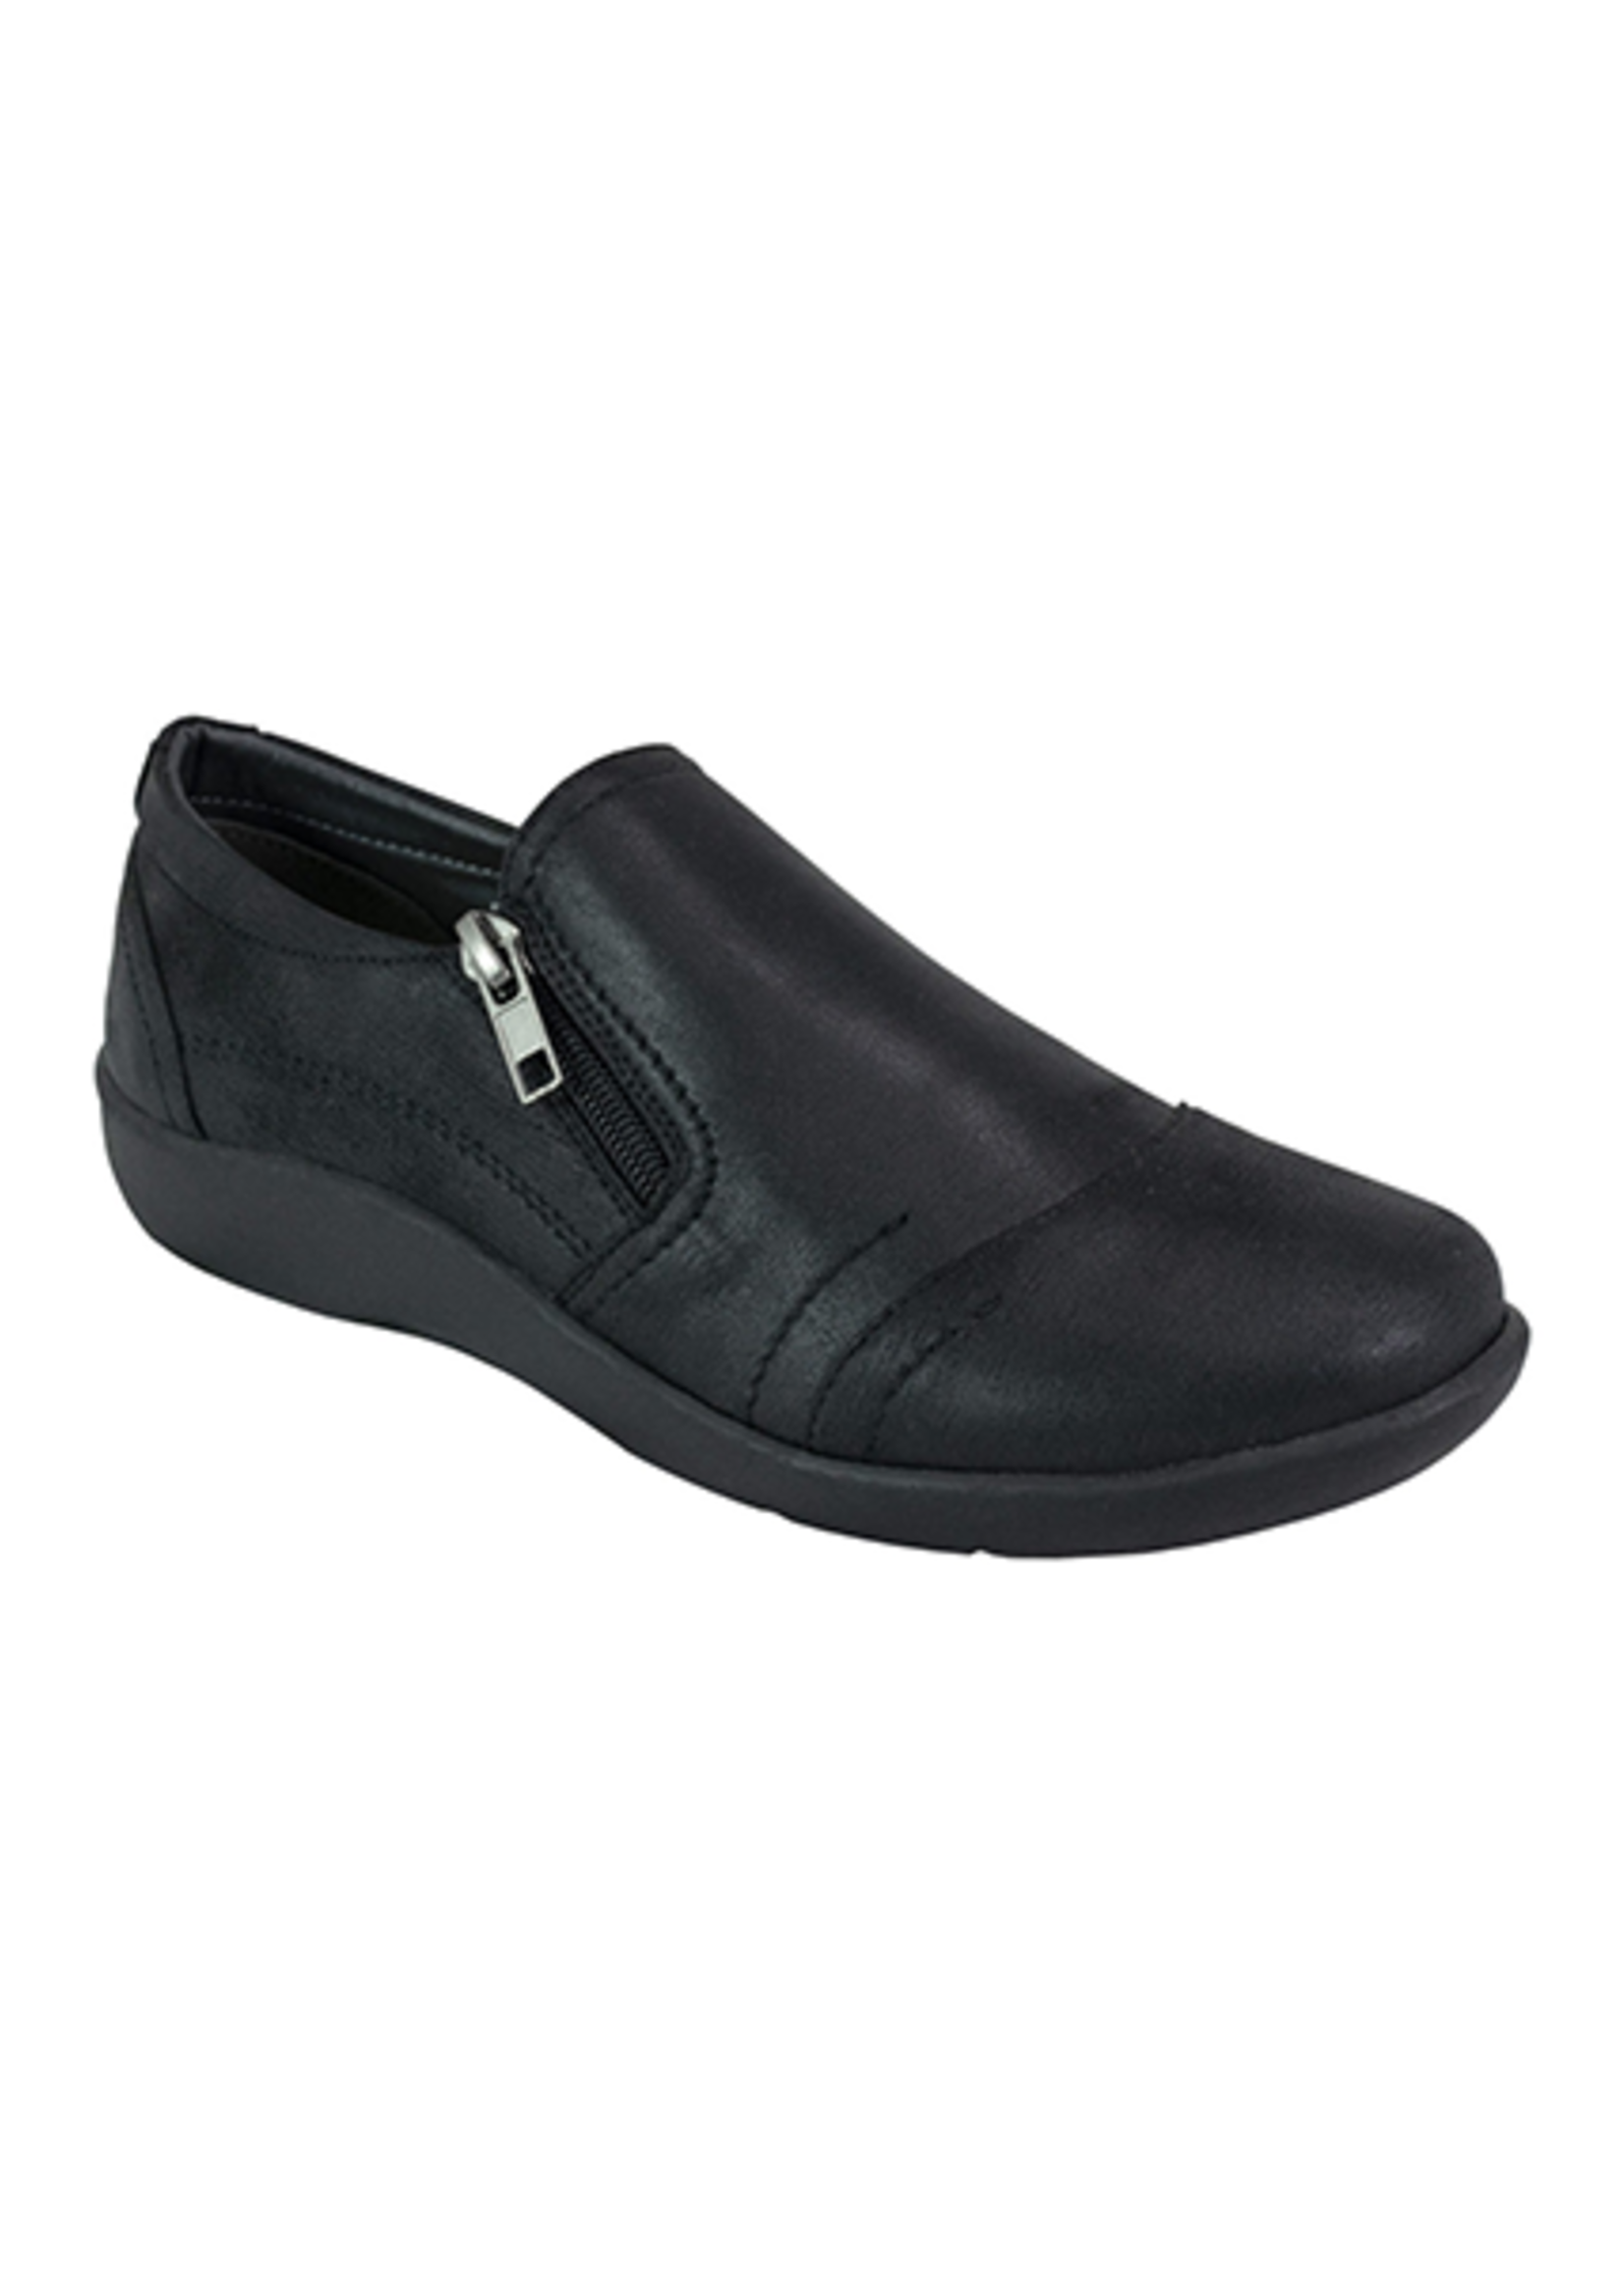 Comfort Leisure Wallis in Black